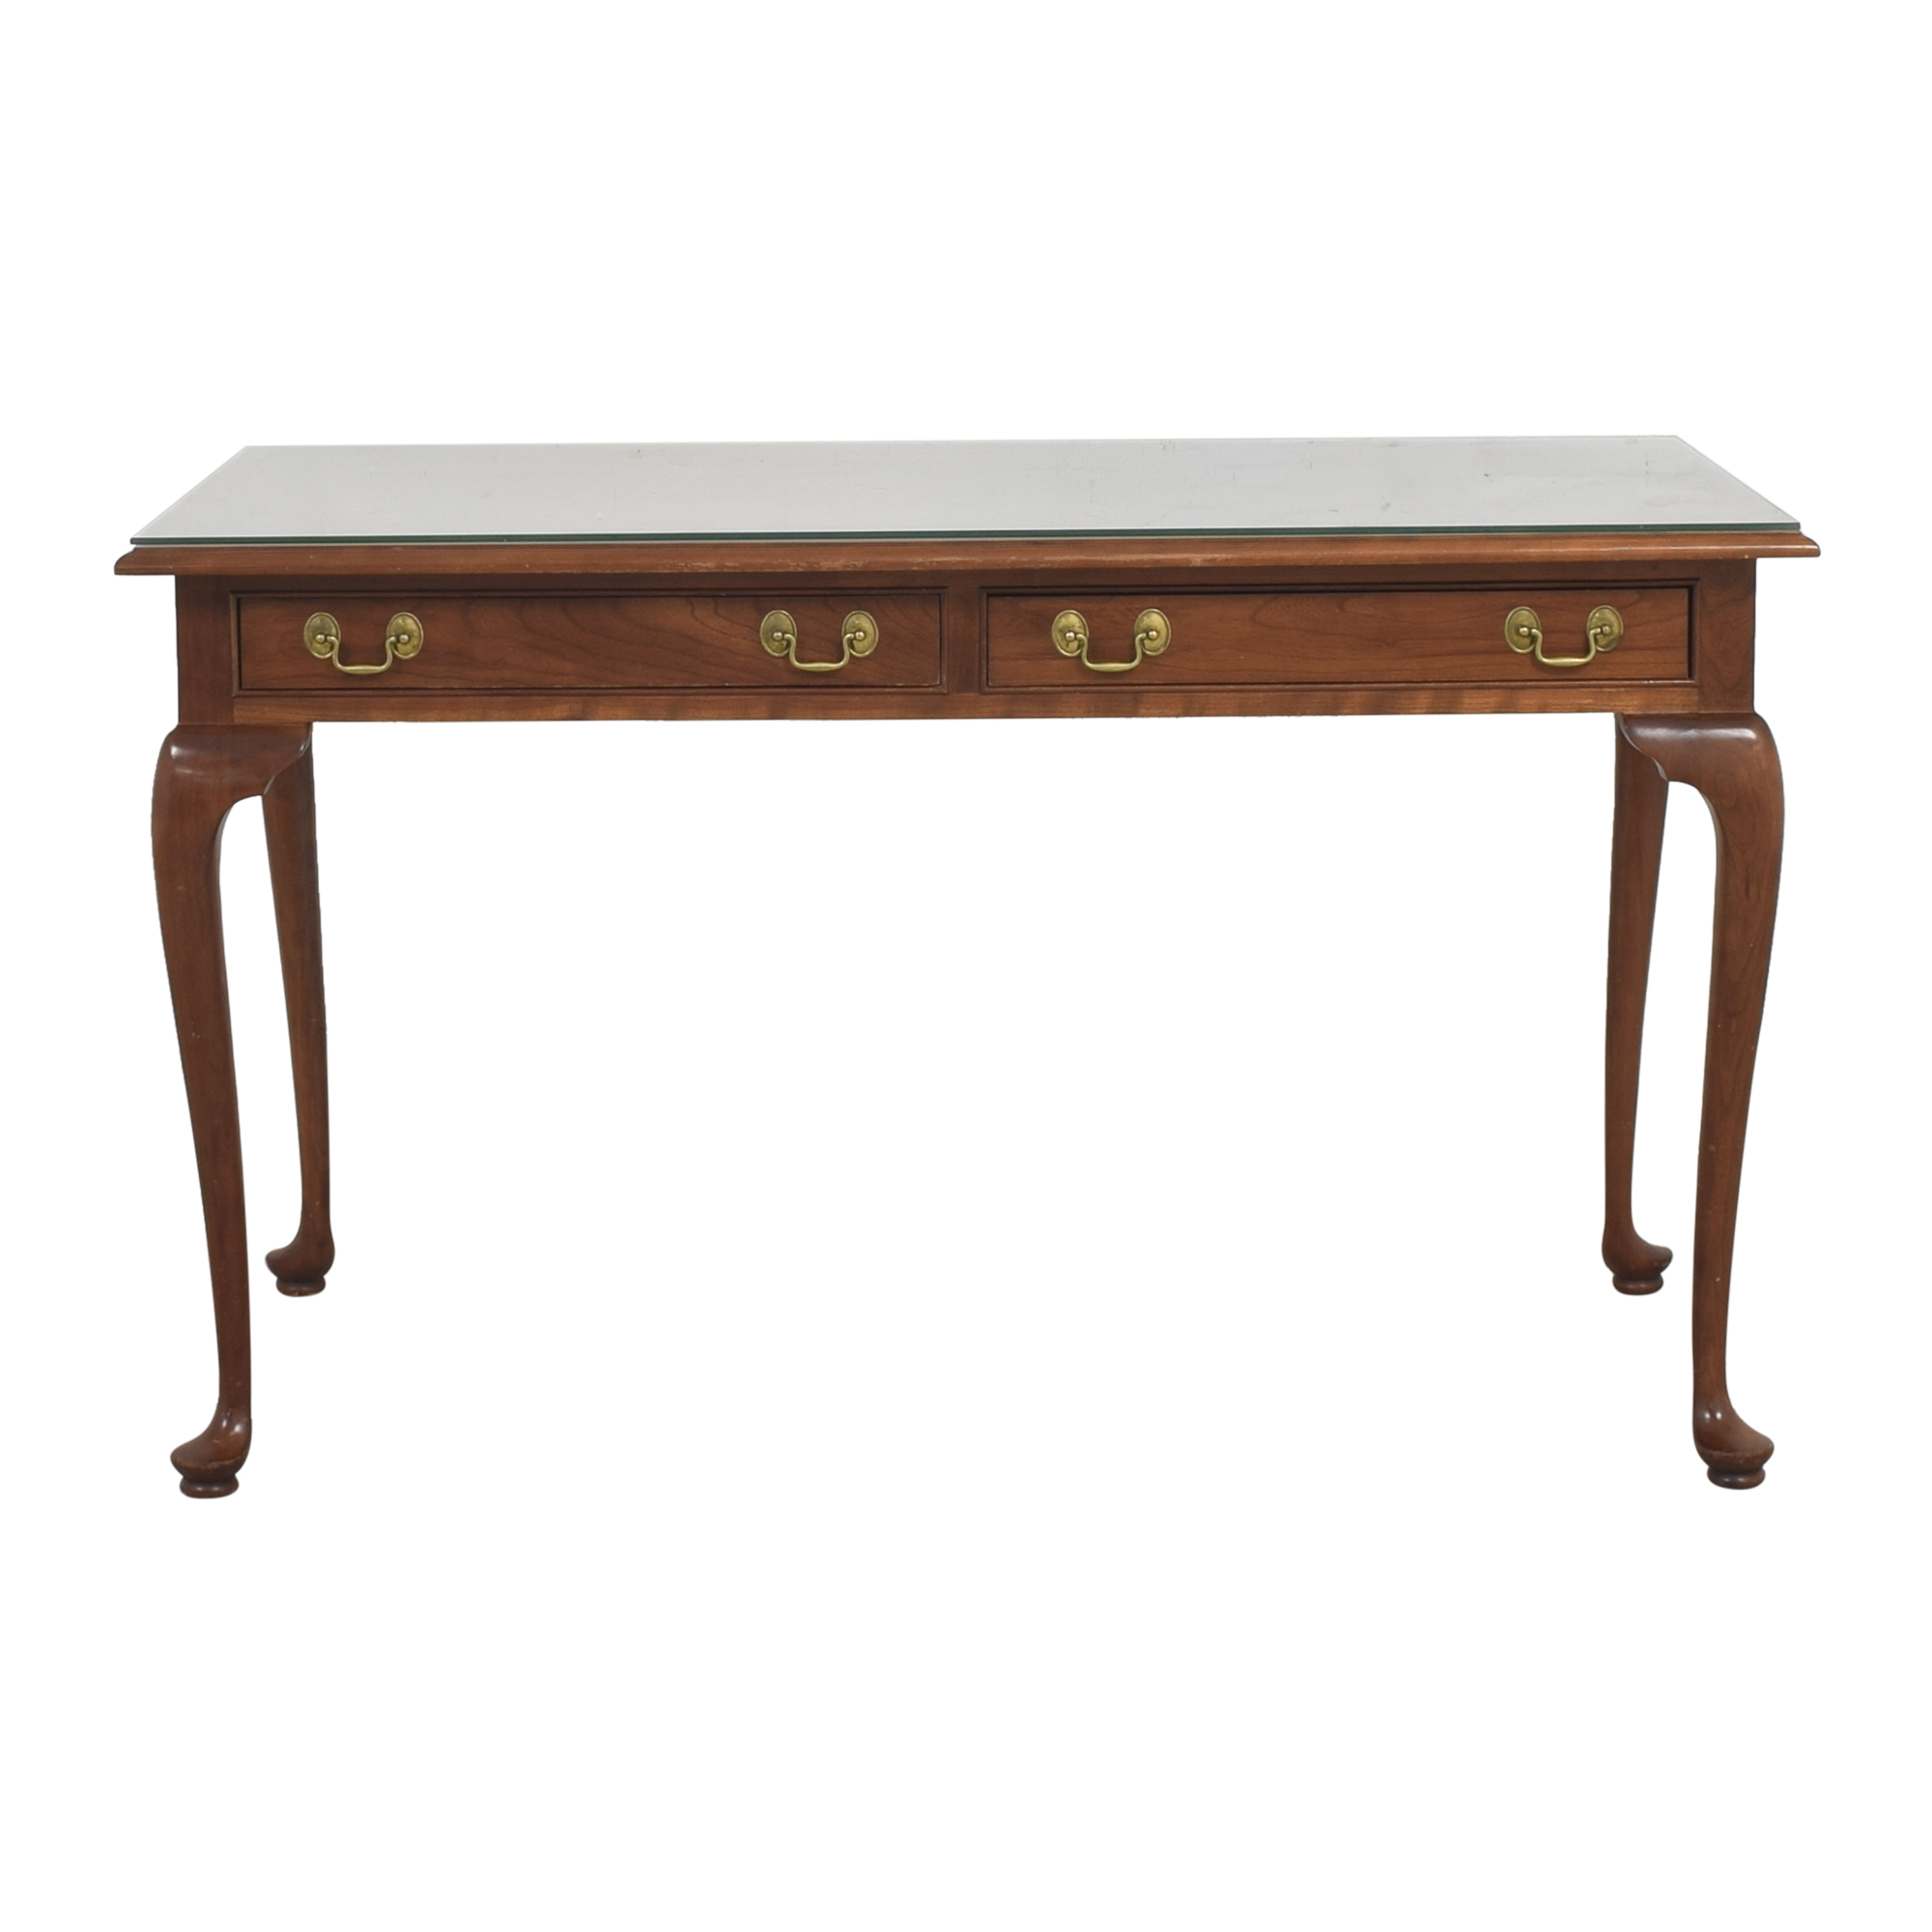 Stickley Furniture Stickley Furniture Writing Desk on sale